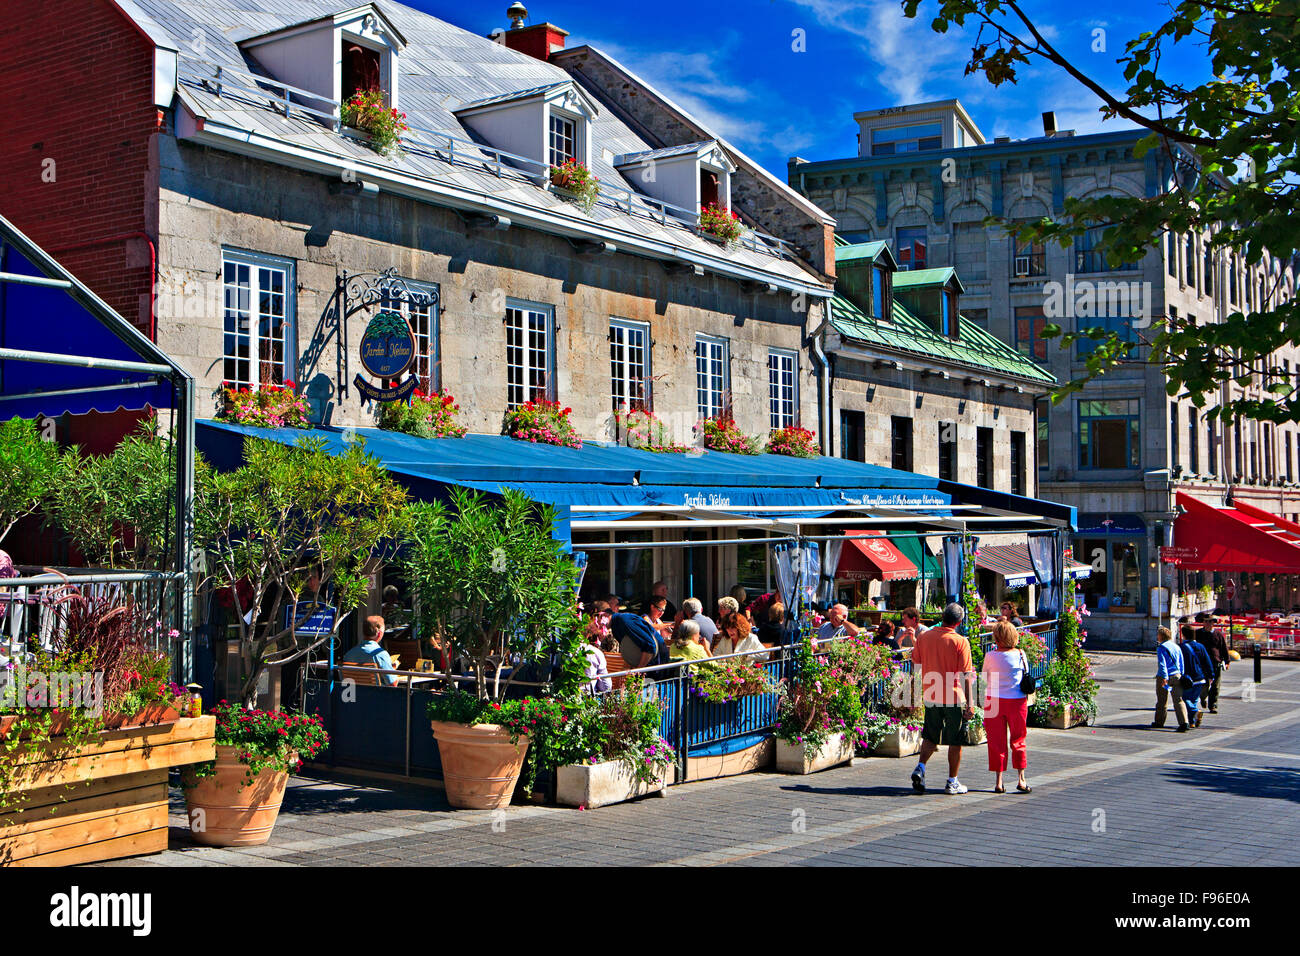 Restaurants lining Place JacquesCartier in Old Montreal, Montreal, Quebec, Canada. - Stock Image